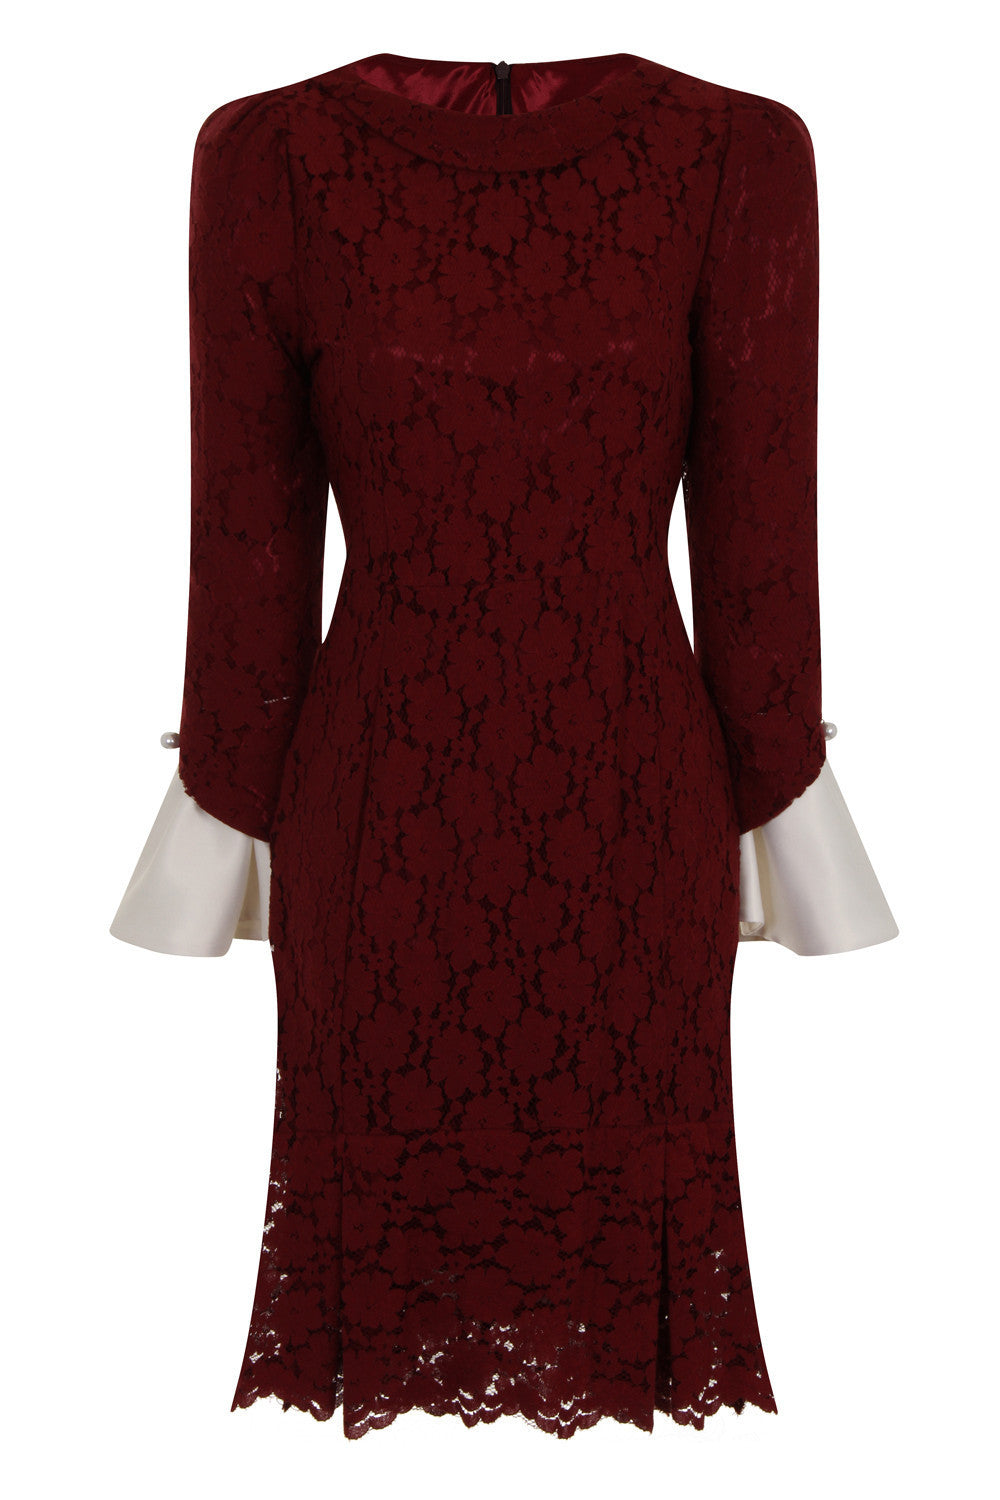 SLEEVES OUT FIT DRESS - WINE - Darccy & Soma London